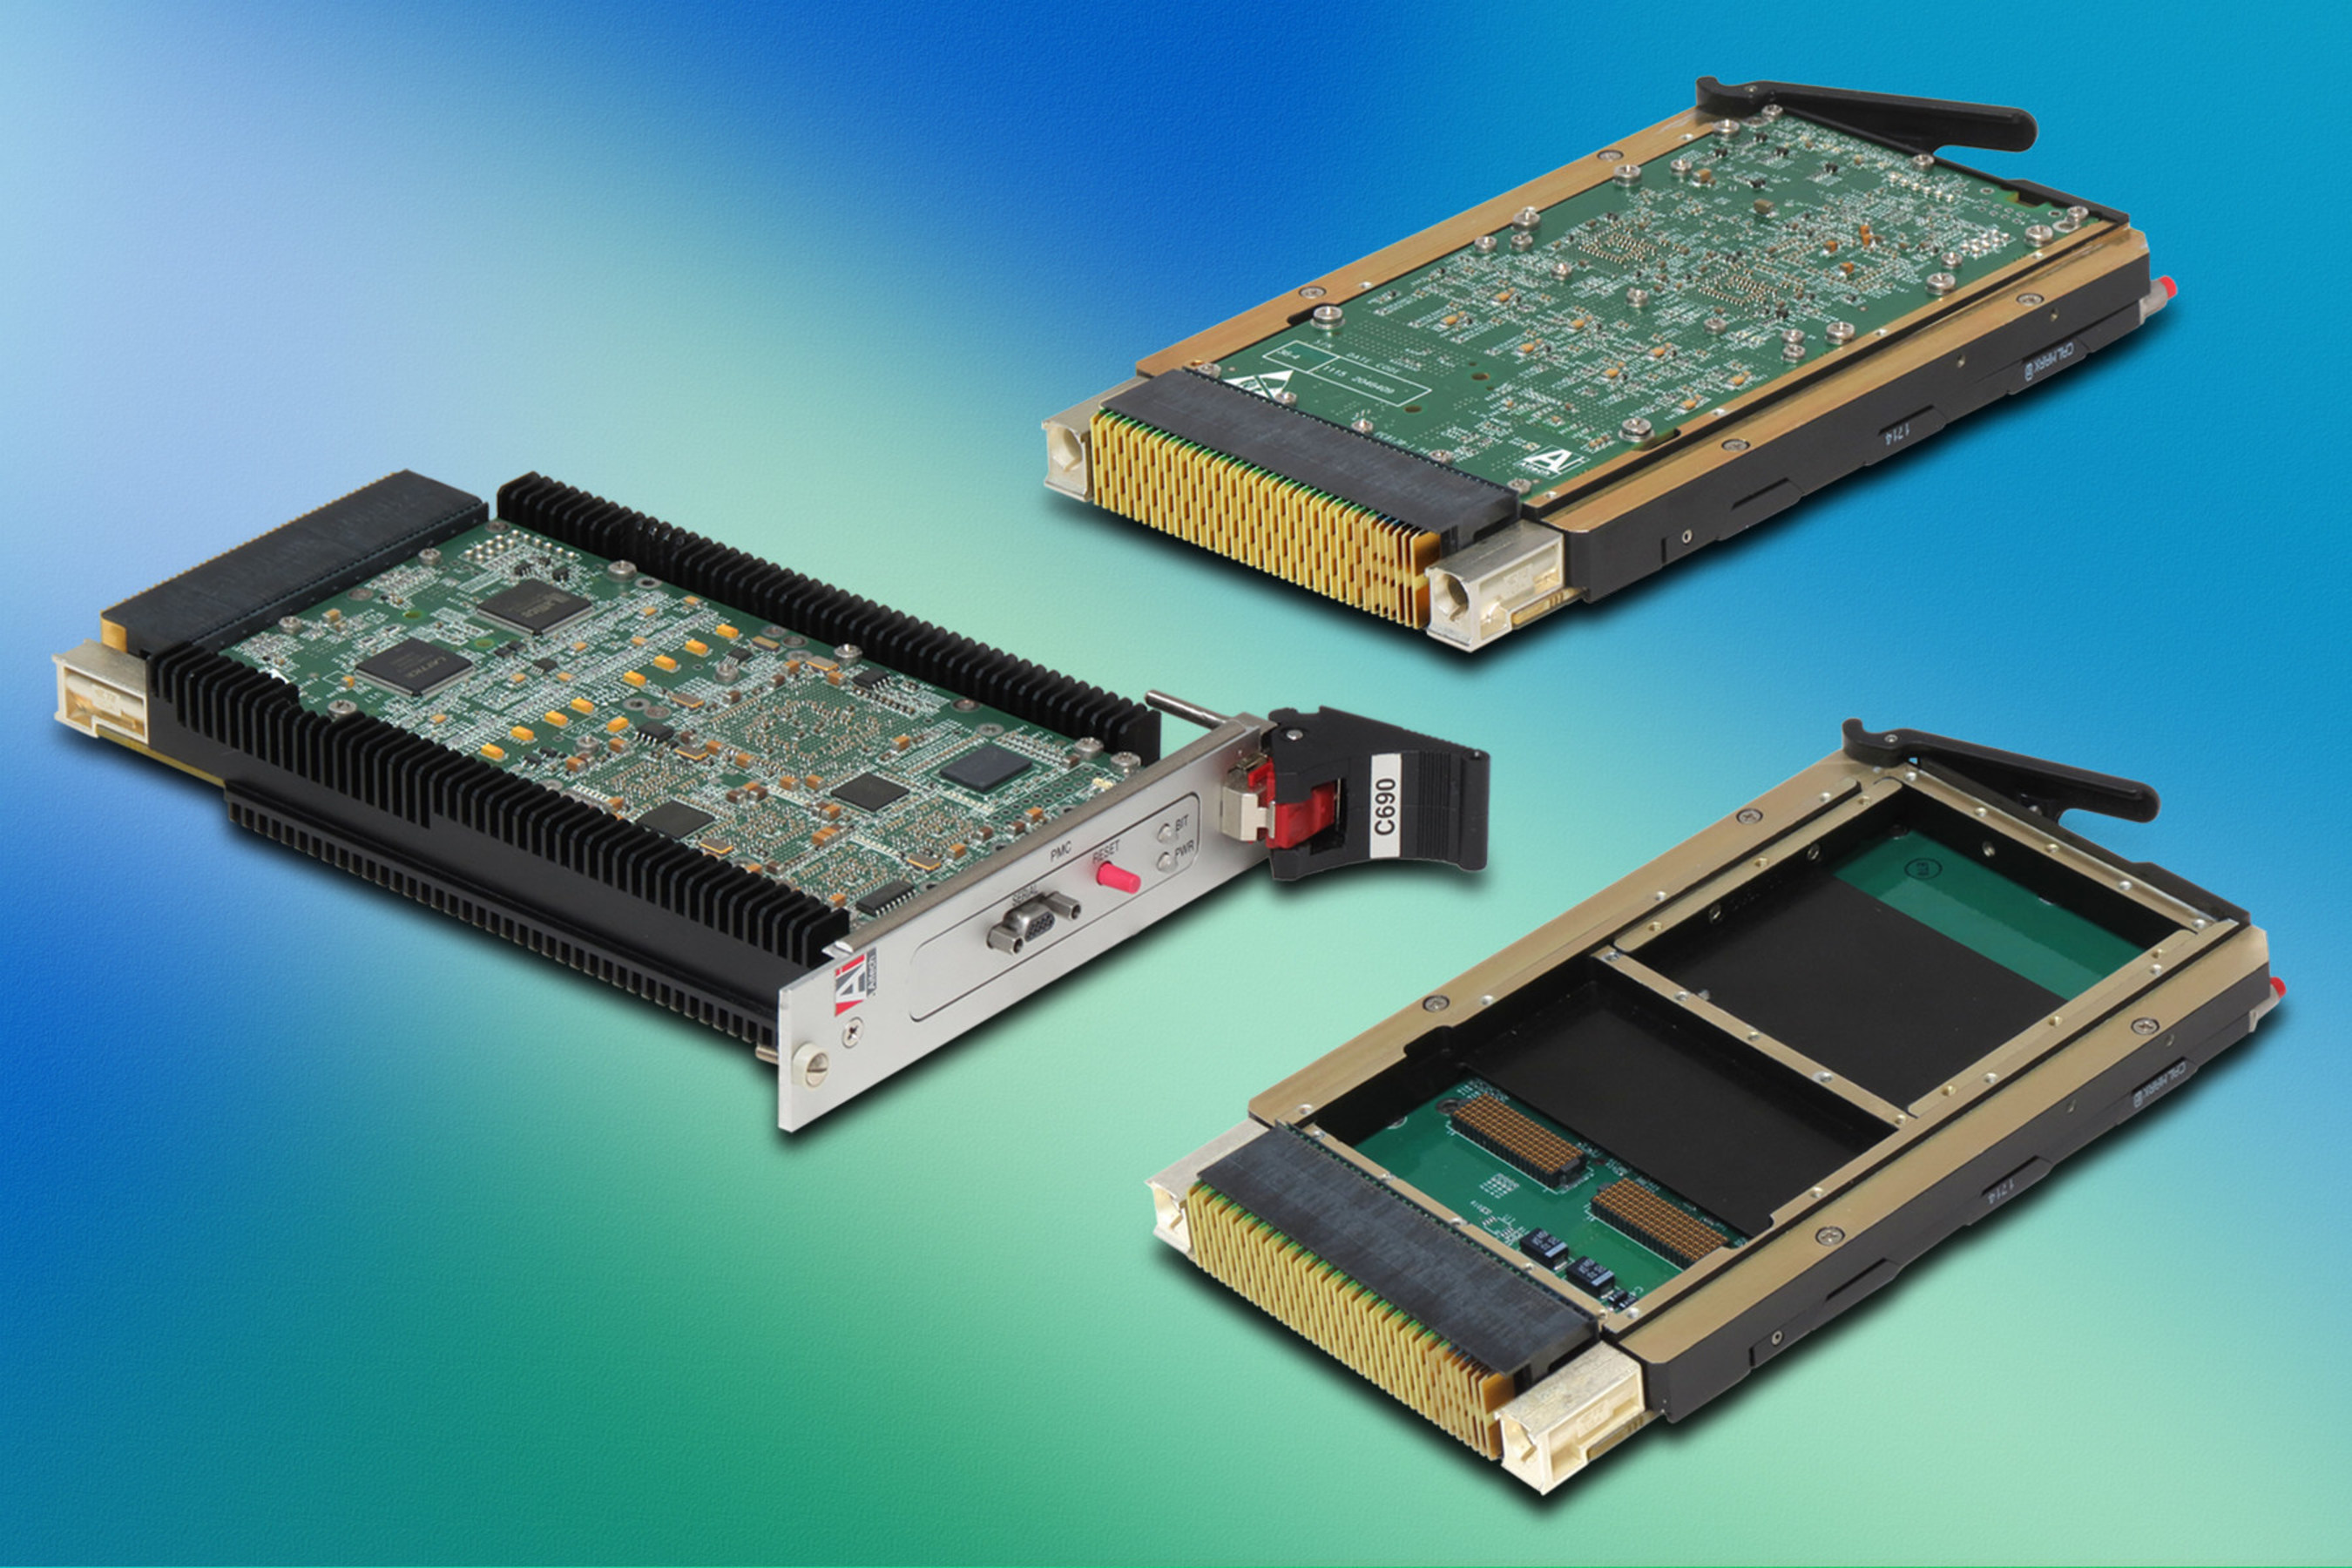 Powerful Switching and Fast Data Transfers in Rugged 3U VPX GigE and PCIe Switches from Aitech